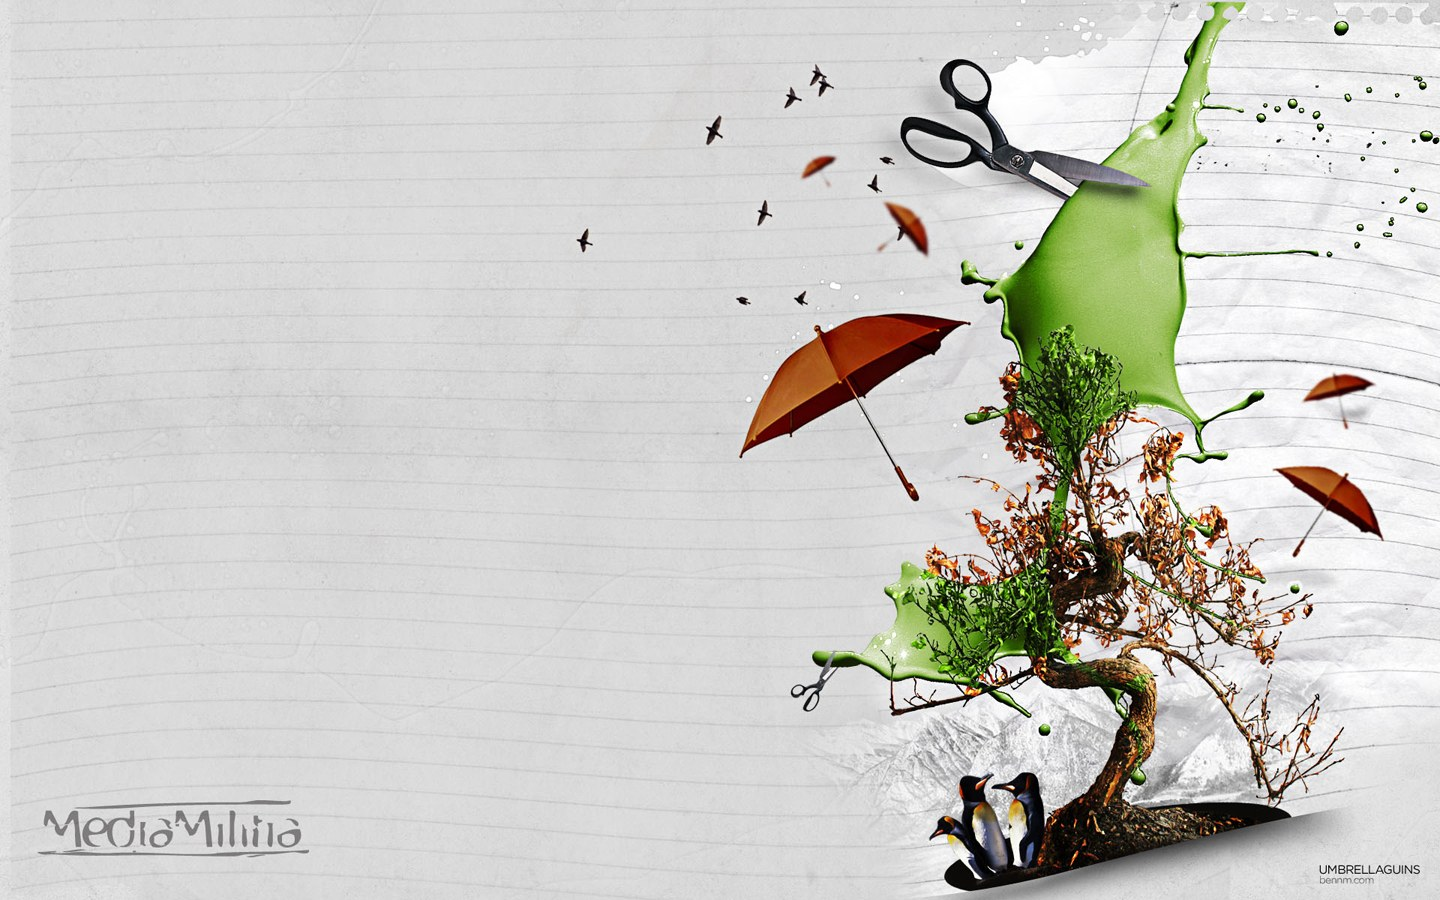 Creative design - cg fantasy design wallpapers 1440*900 no.13